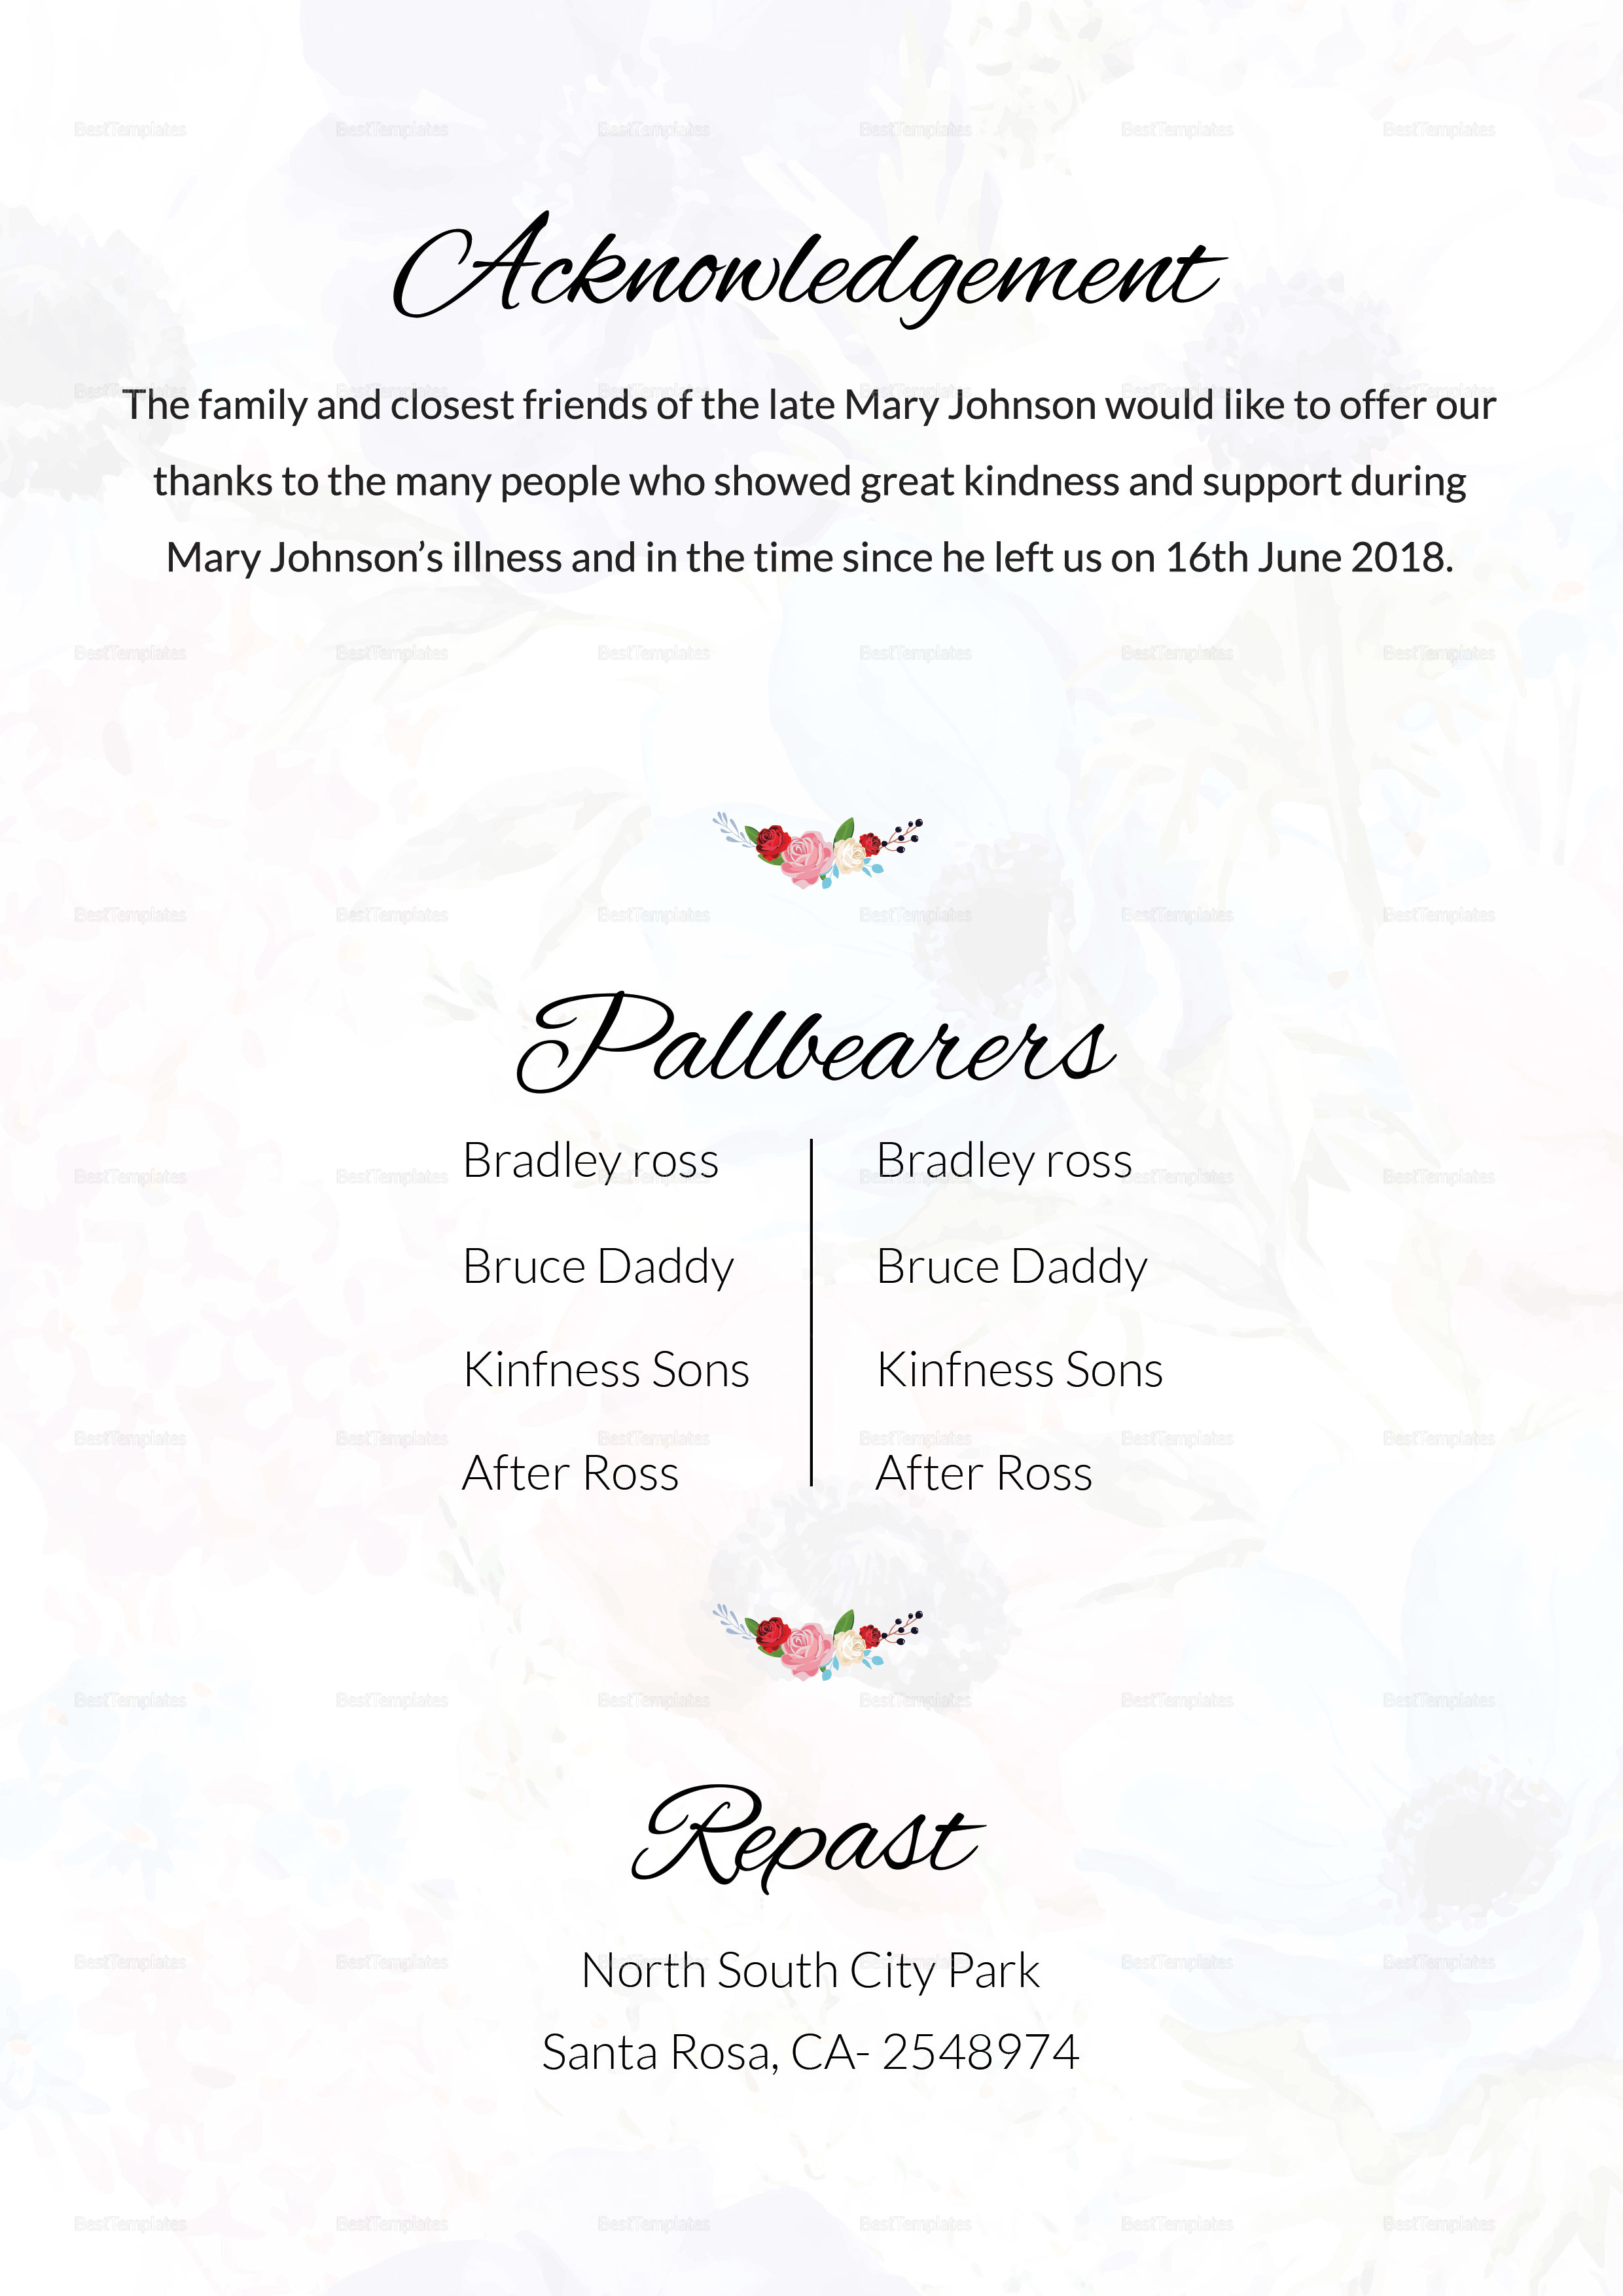 Printable Funeral Resolution Template in Adobe Photoshop, Microsoft Word